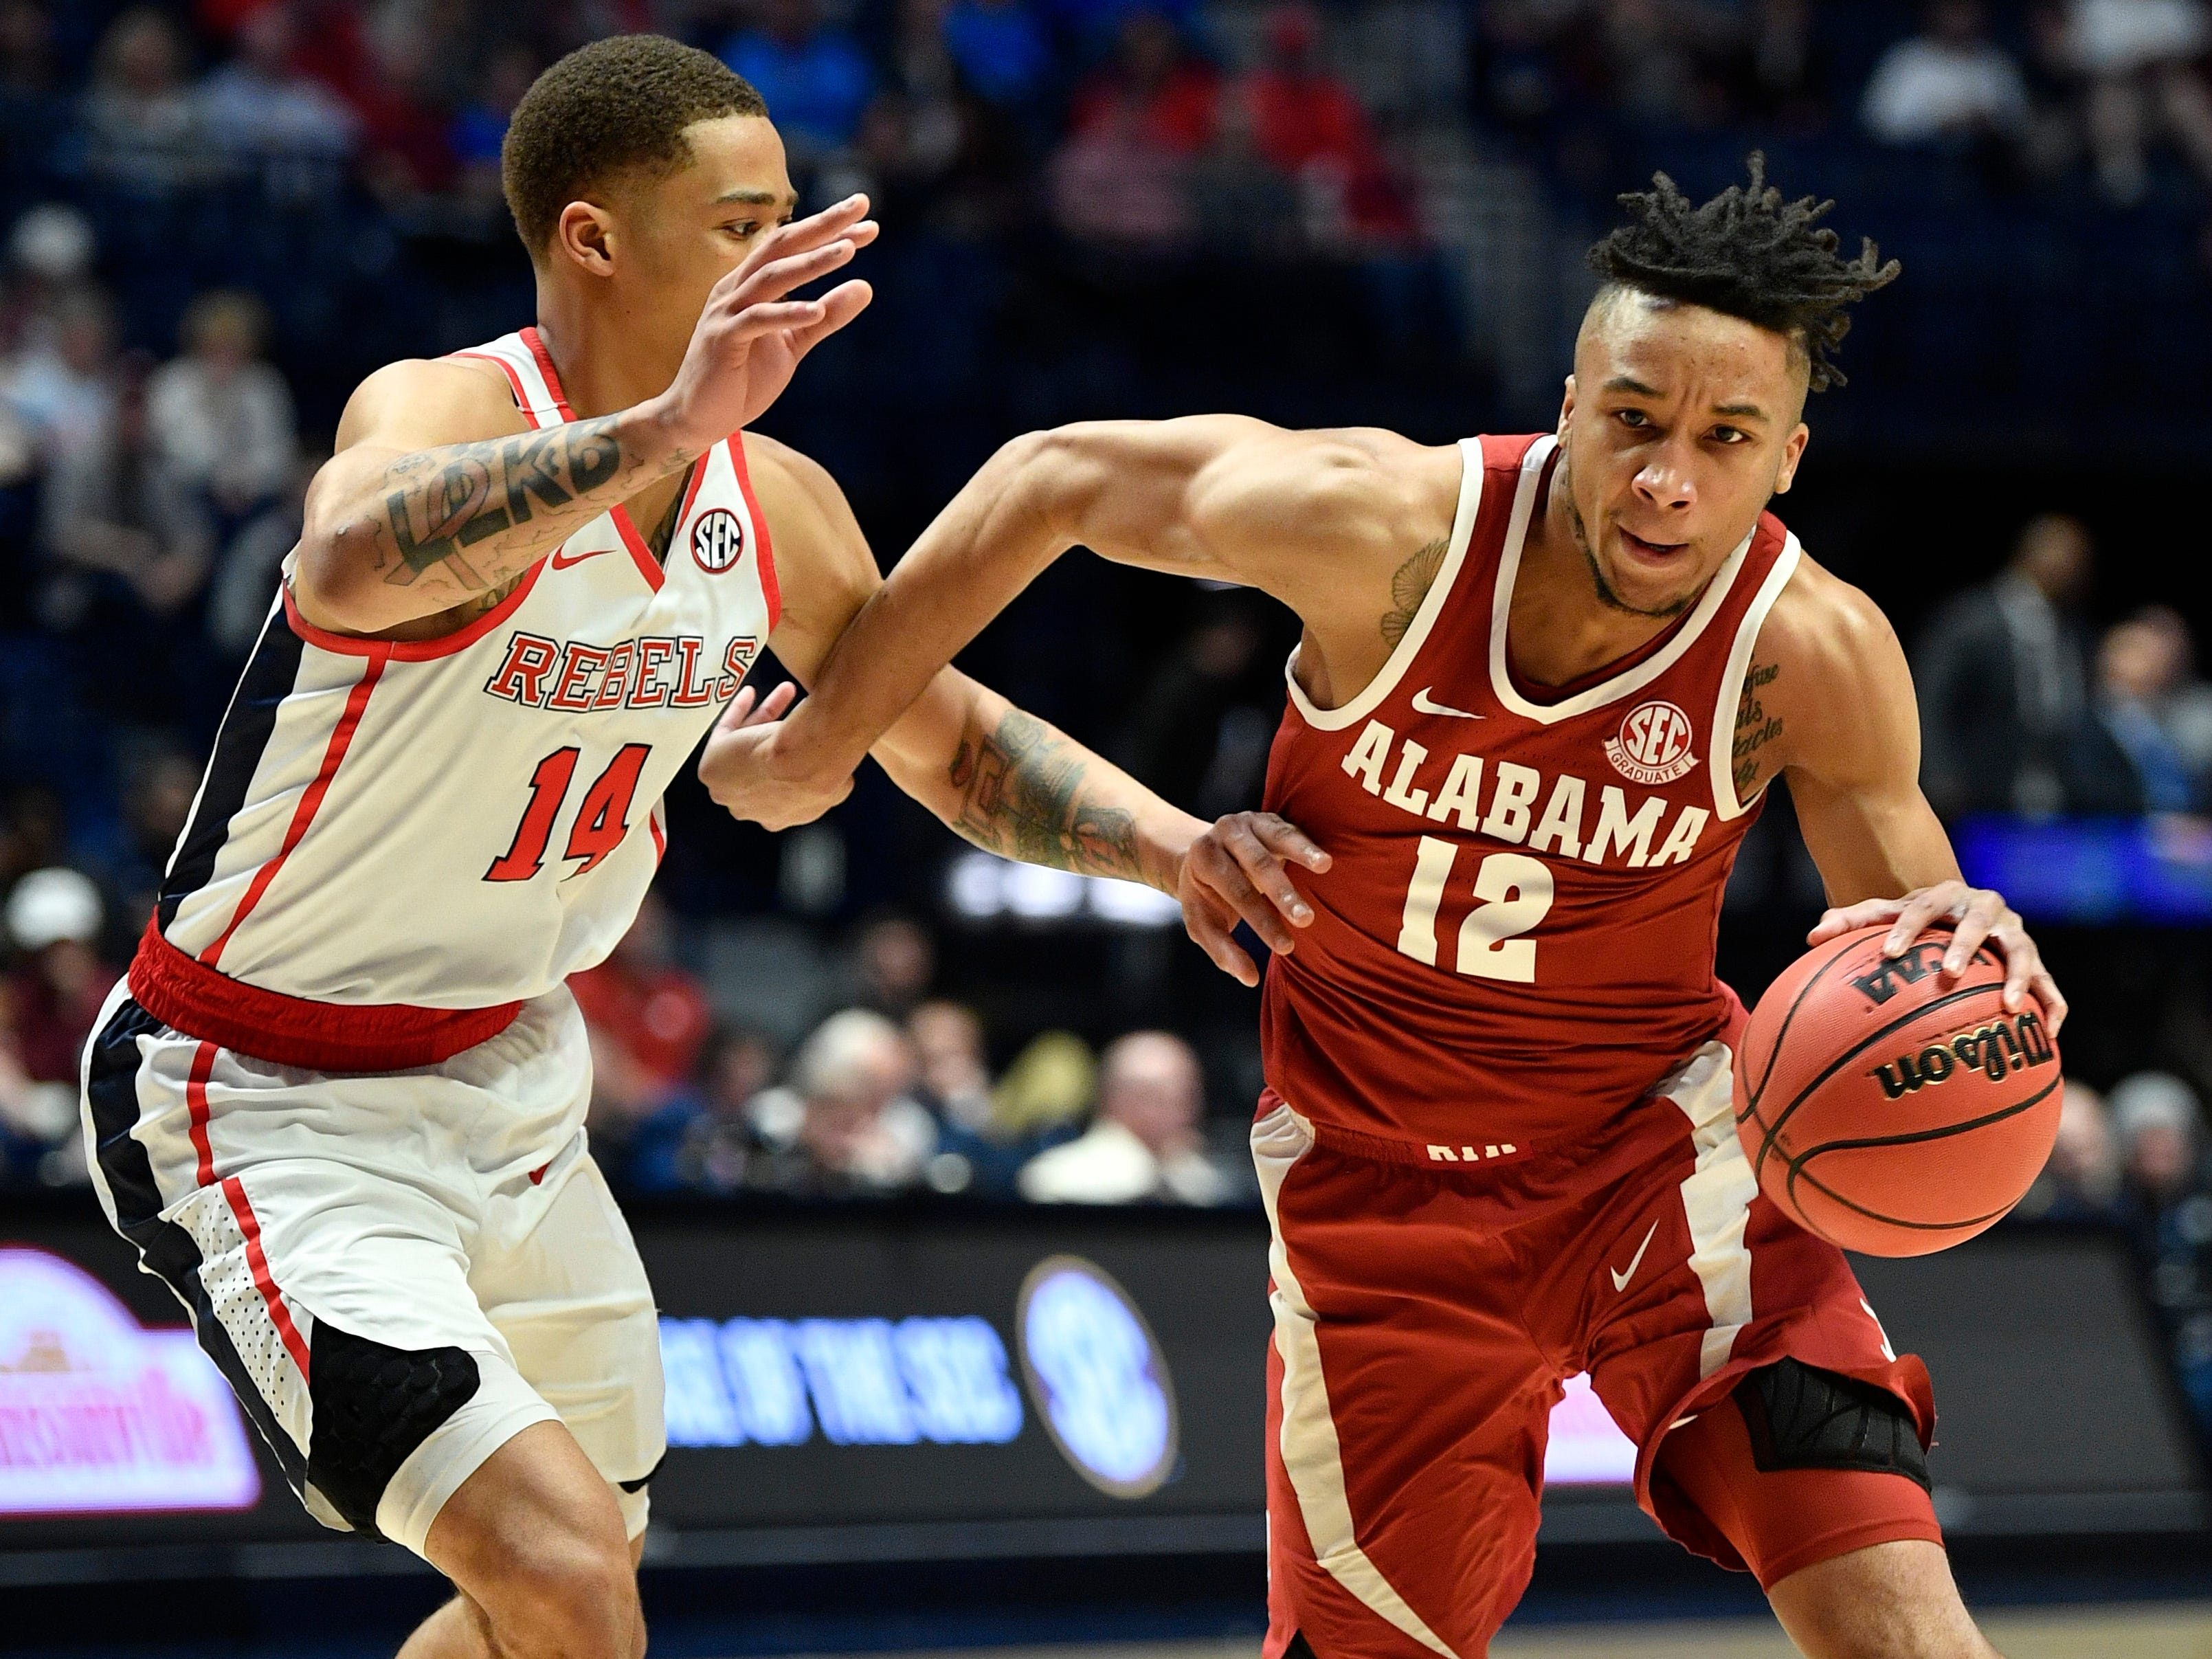 Alabama guard Dazon Ingram (12) moves the ball defended by Ole Miss forward KJ Buffen (14) during the first half of the SEC Men's Basketball Tournament game at Bridgestone Arena in Nashville, Tenn., Thursday, March 14, 2019.